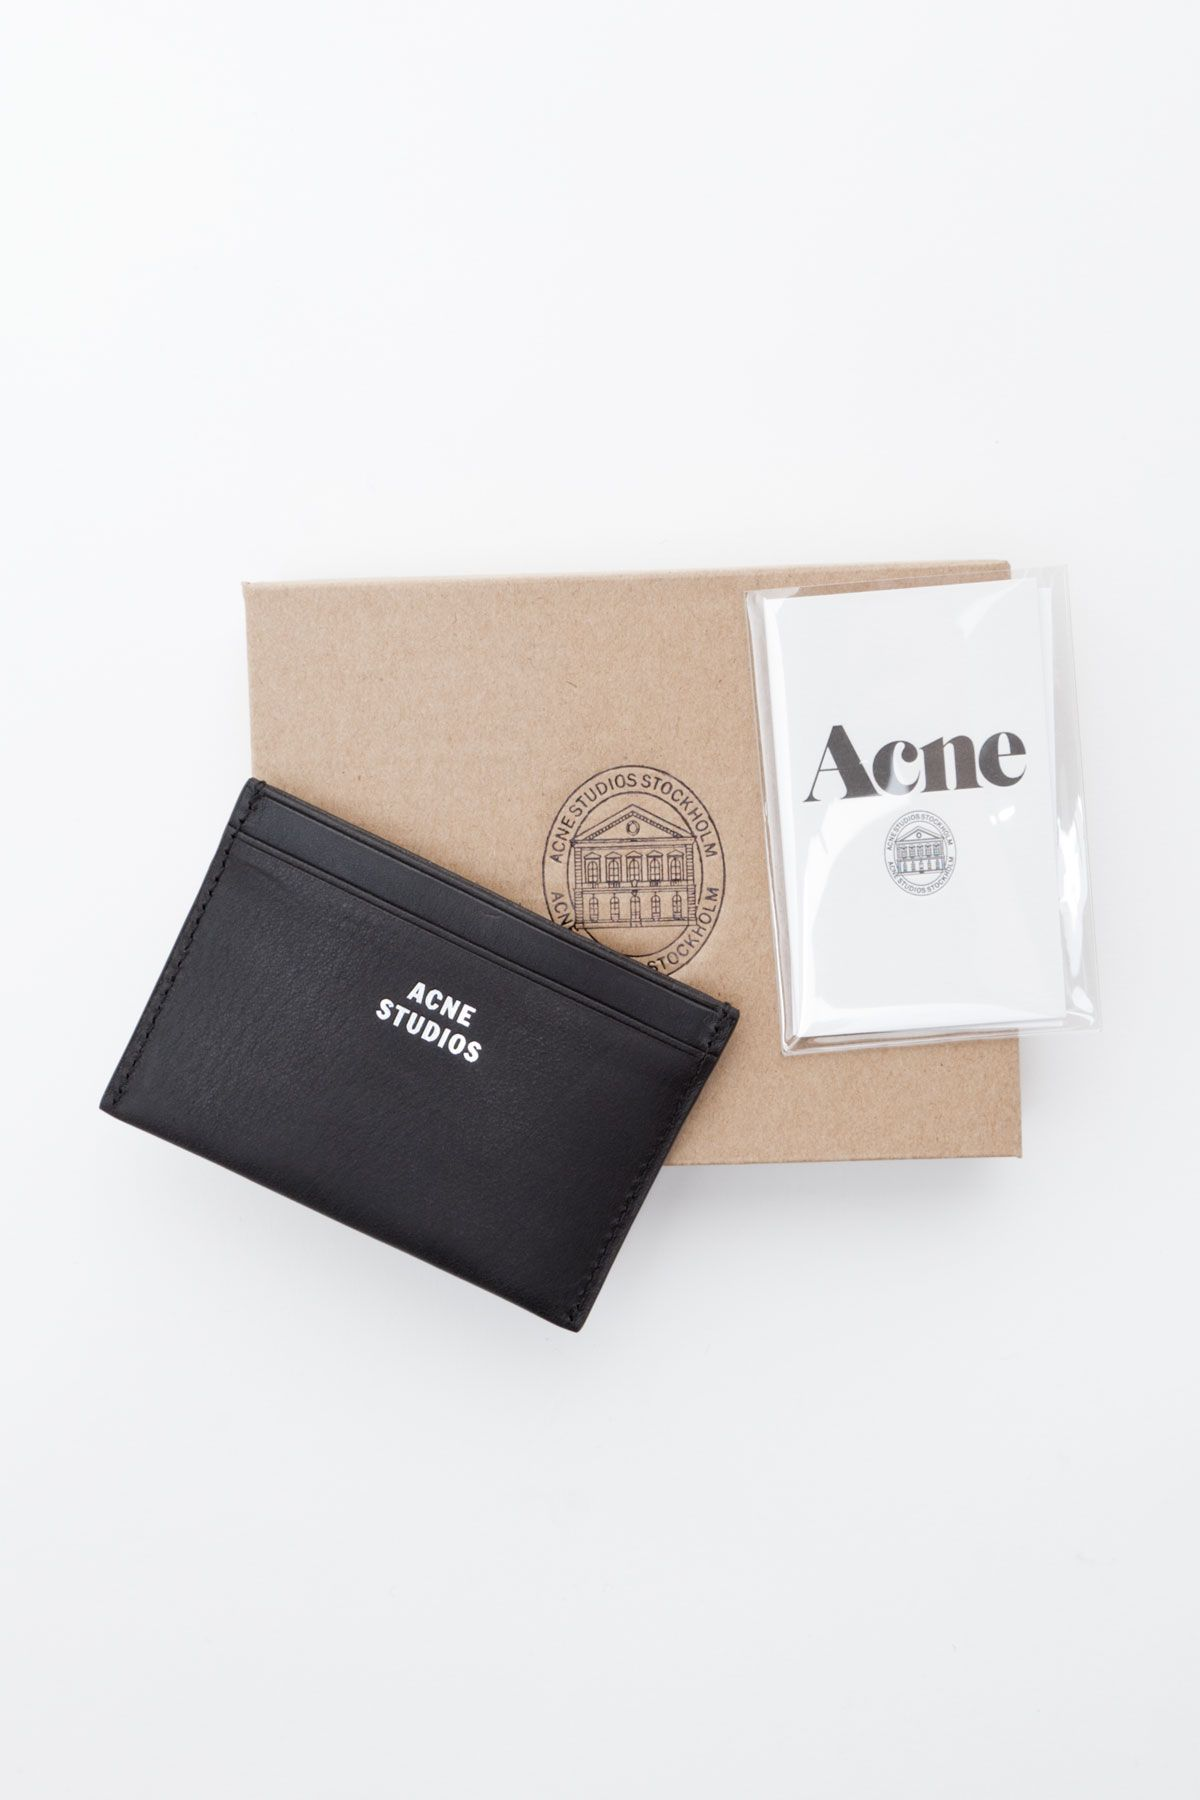 Acne Studios   Card Case  DearTopshop Conception Graphique, Mode, Blanc,  Conception D f48e9f8bf3d